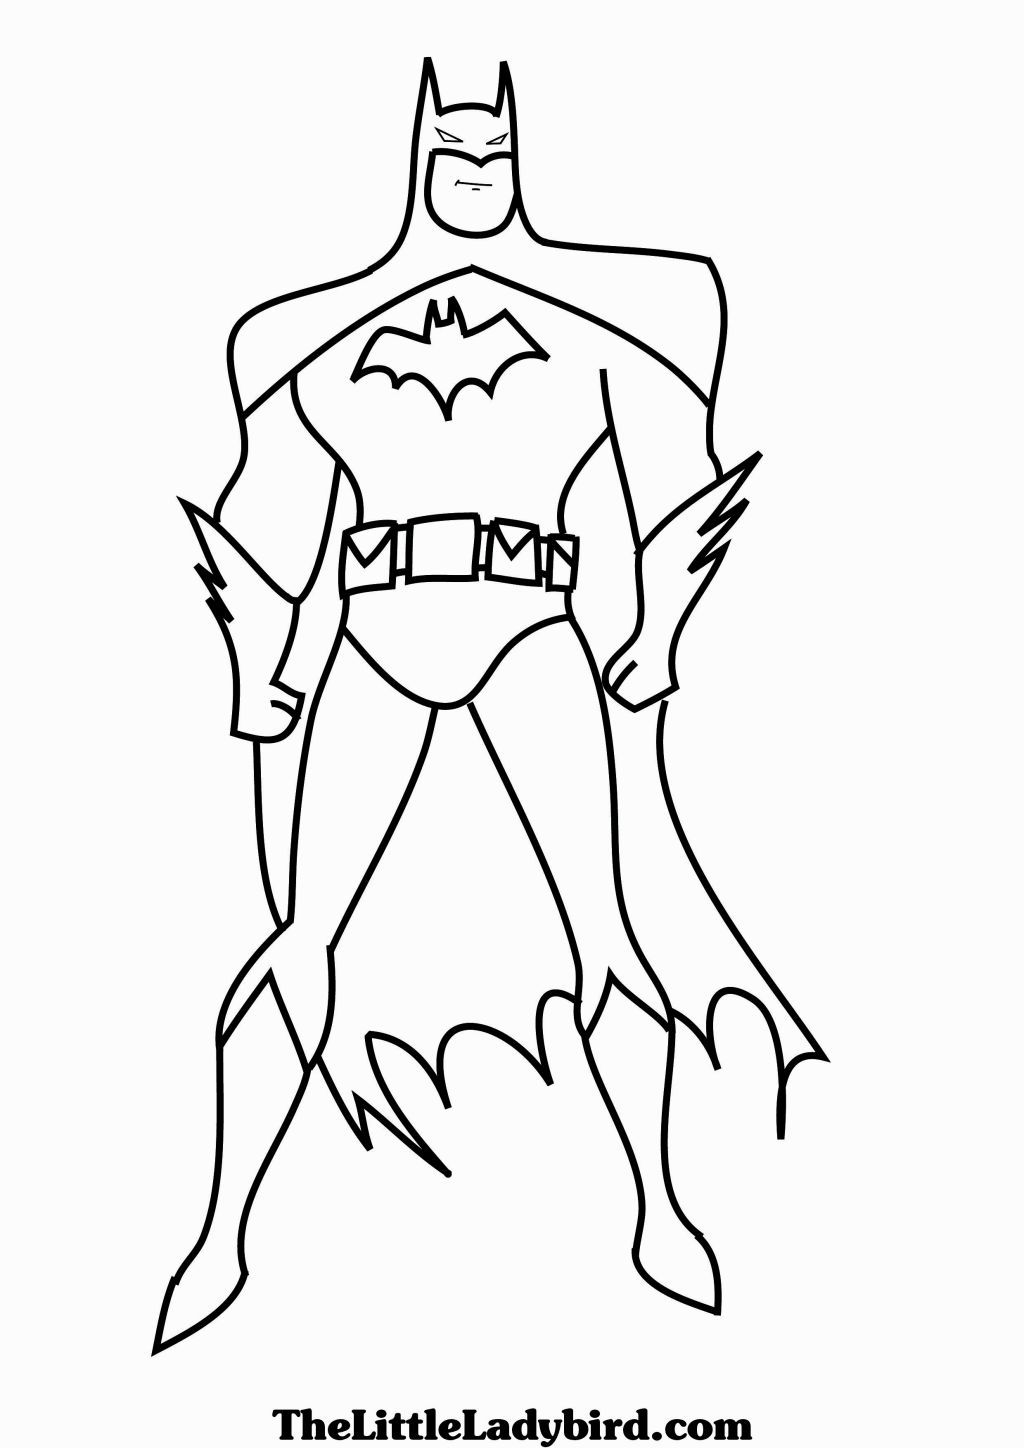 coloring pages of batman coloring pages pinterest batman Old Batman Coloring Book Pages  Coloring Book Pages Batman